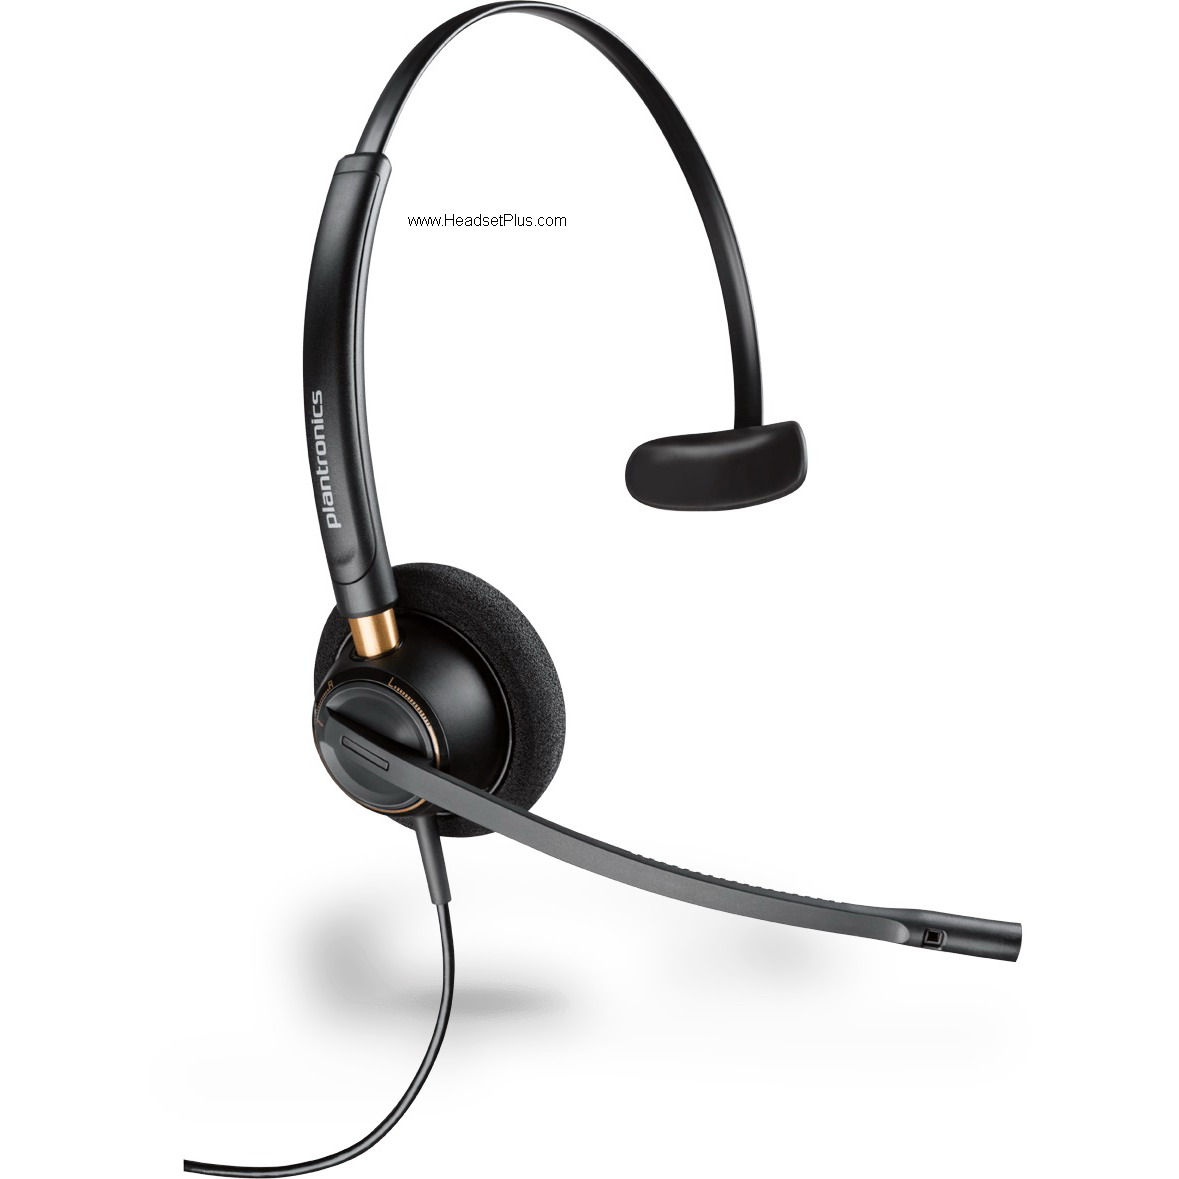 How to Get Rid of Echo of a Plantronics Wireless Headset